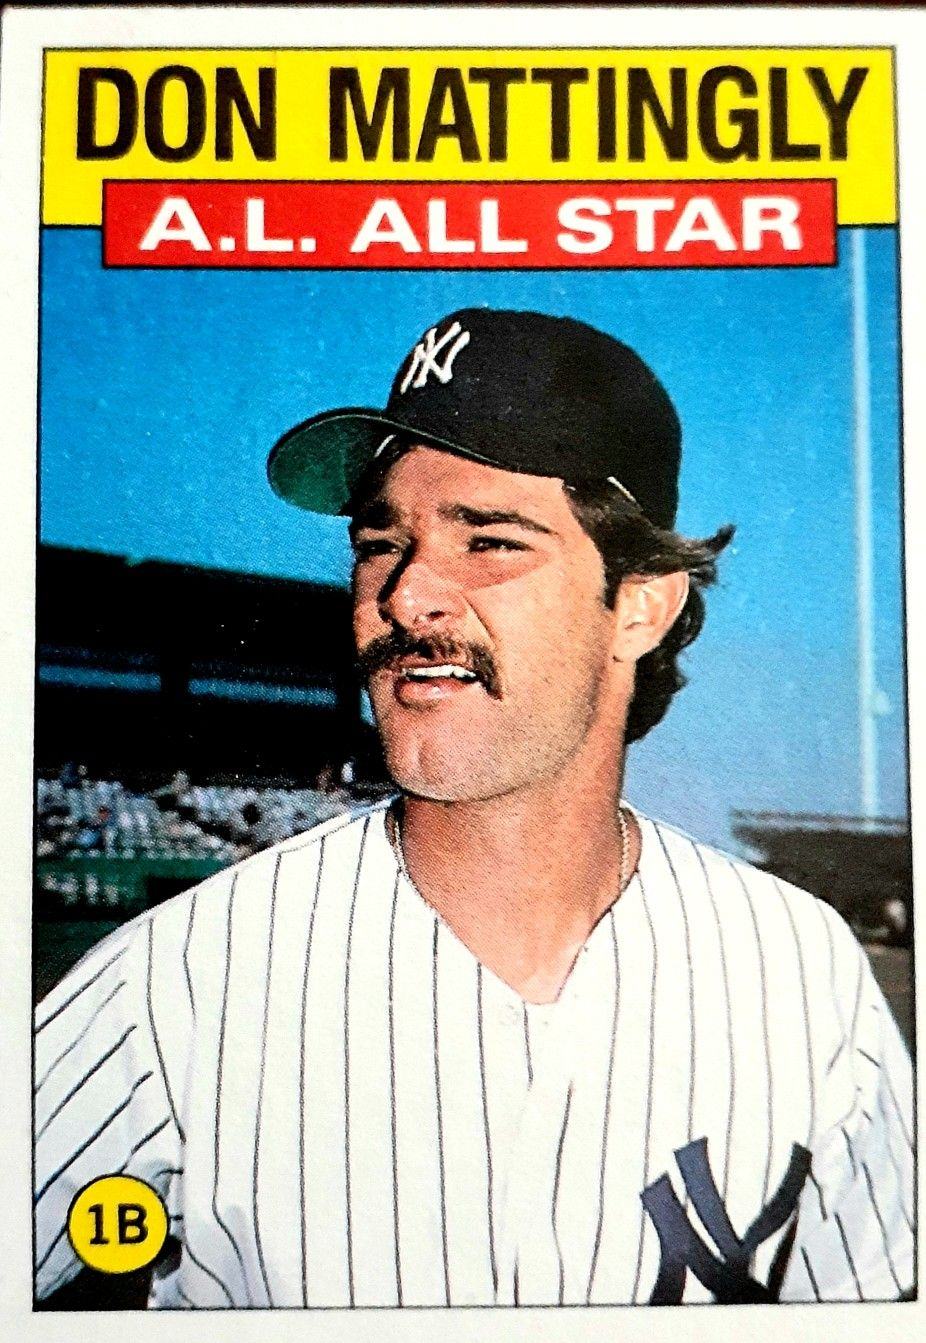 Topps 1986 In 2020 Don Mattingly Baseball Cards Old Baseball Cards